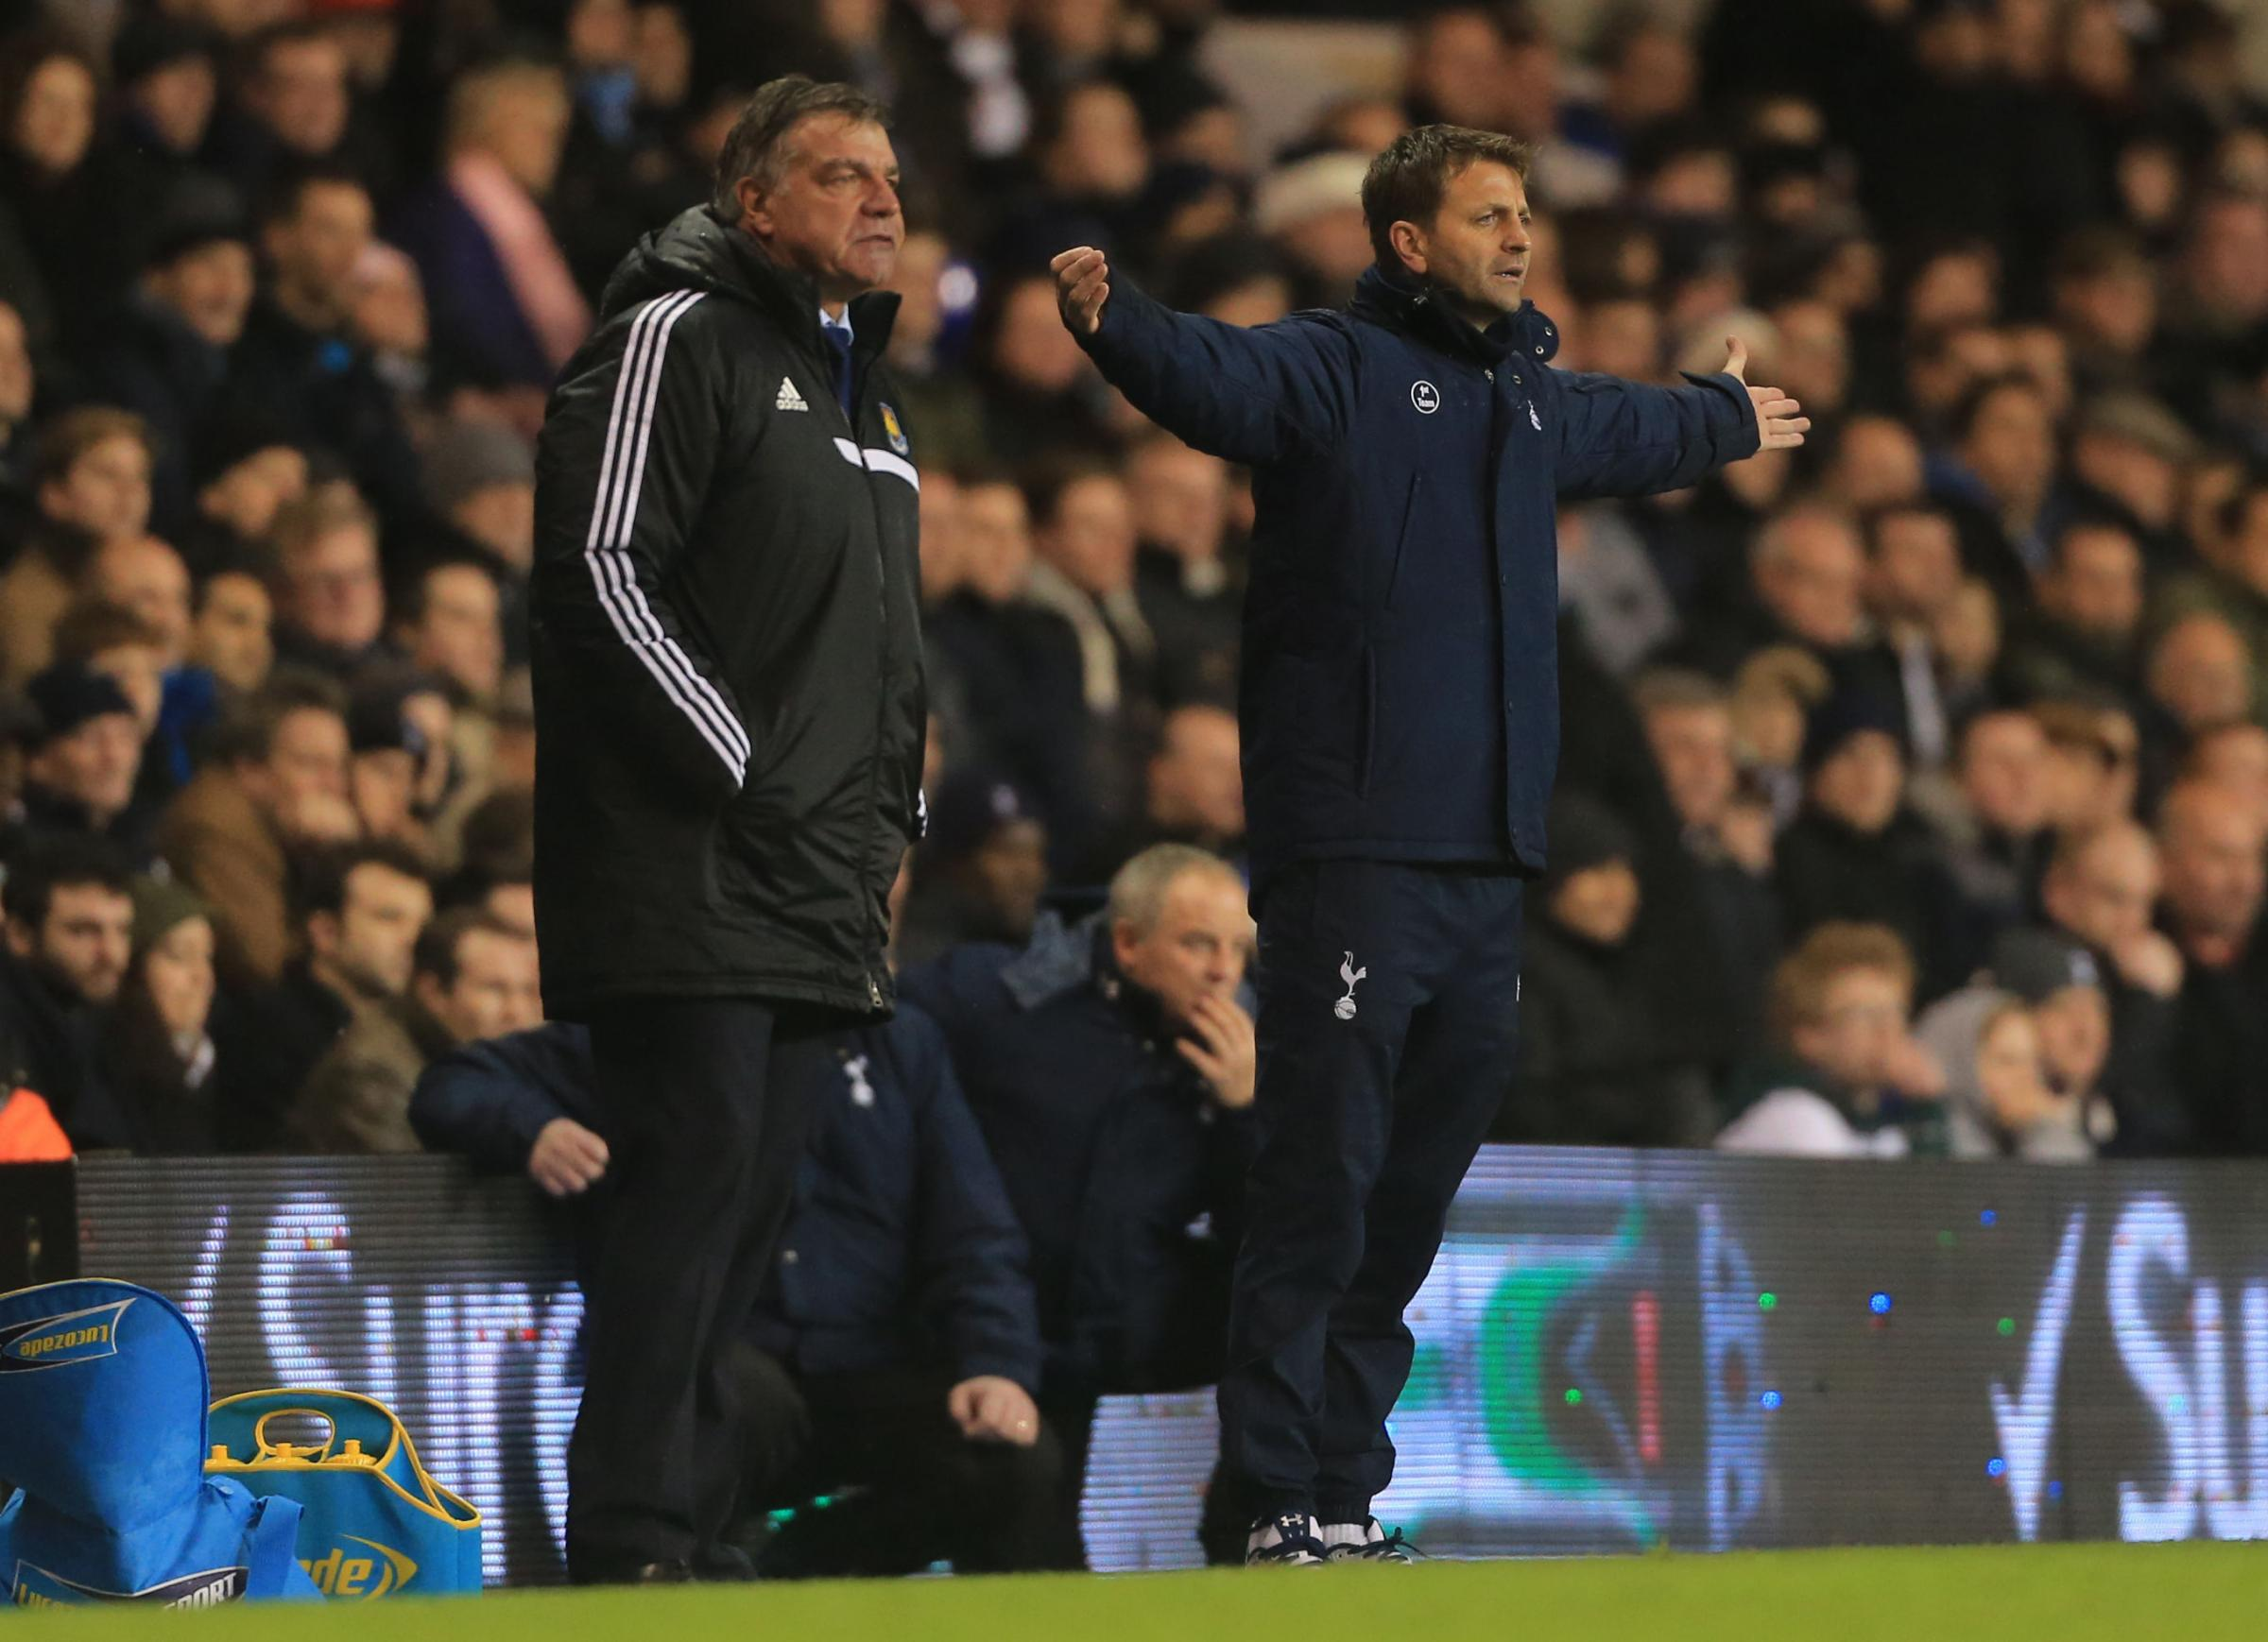 Tim Sherwood could be in line to replace West Brom's Pepe Mel. Picture: Action Images